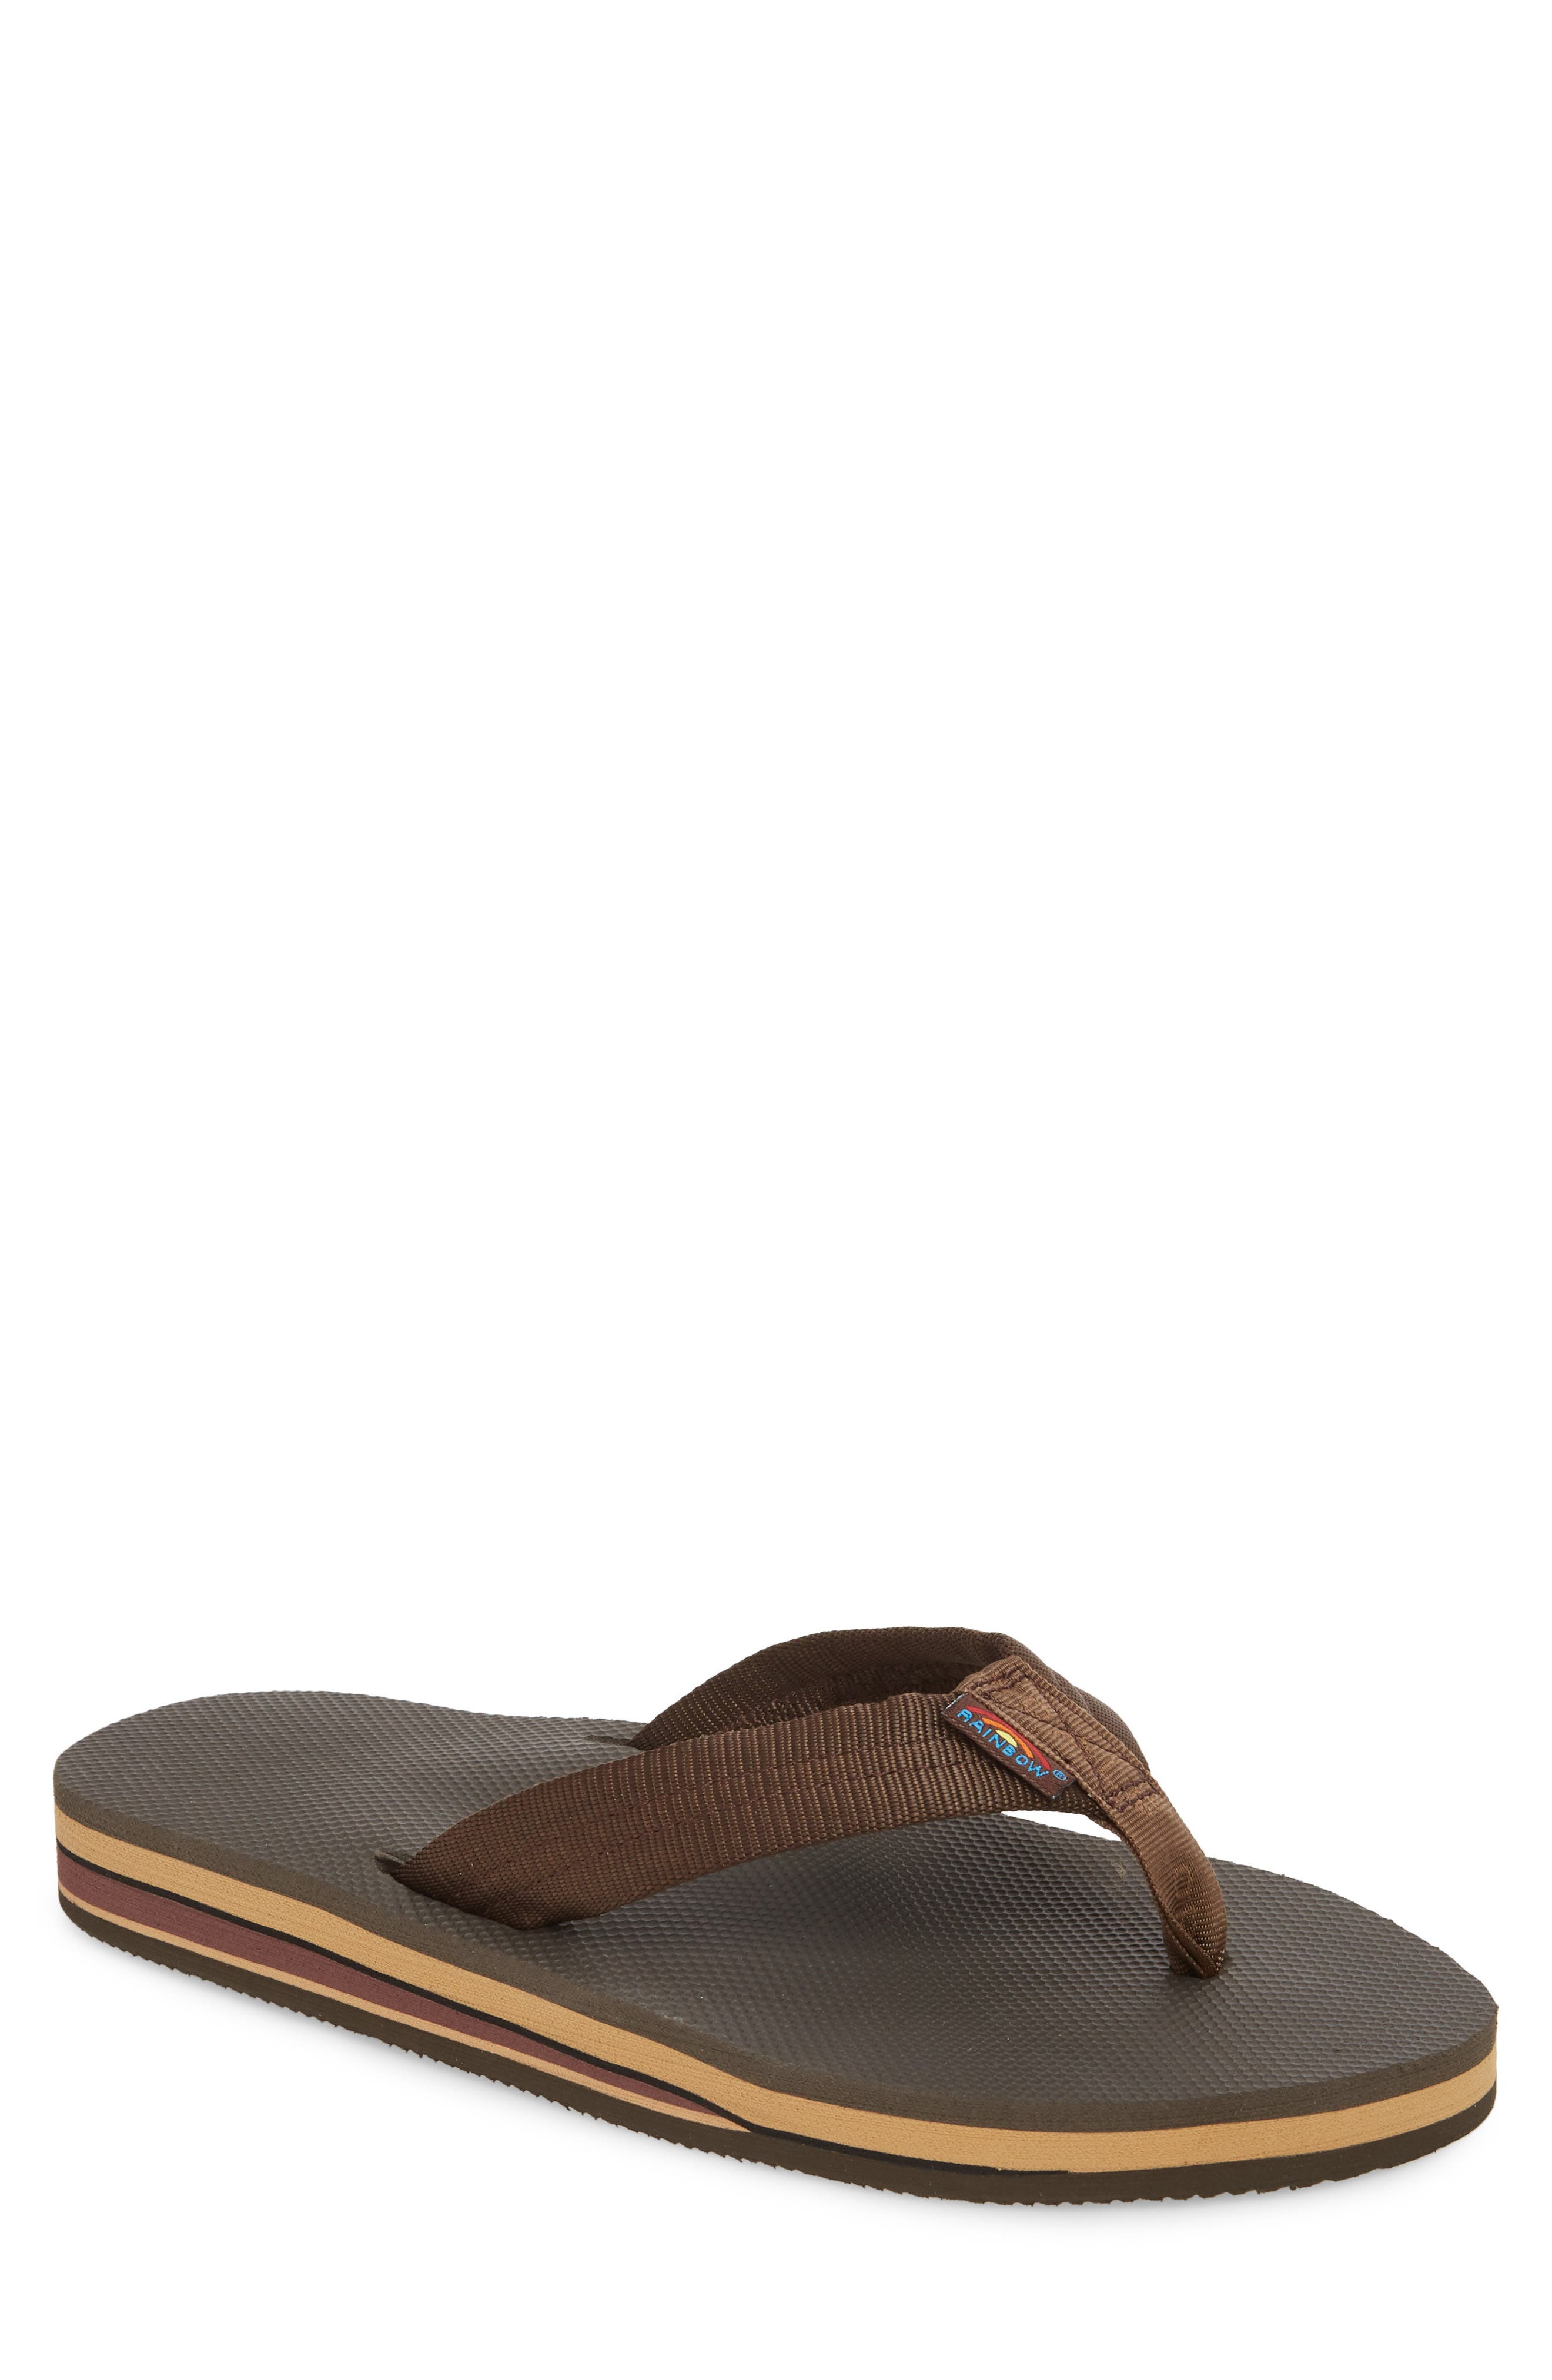 Double Layer Classic Flip Flop,                         Main,                         color, Brown